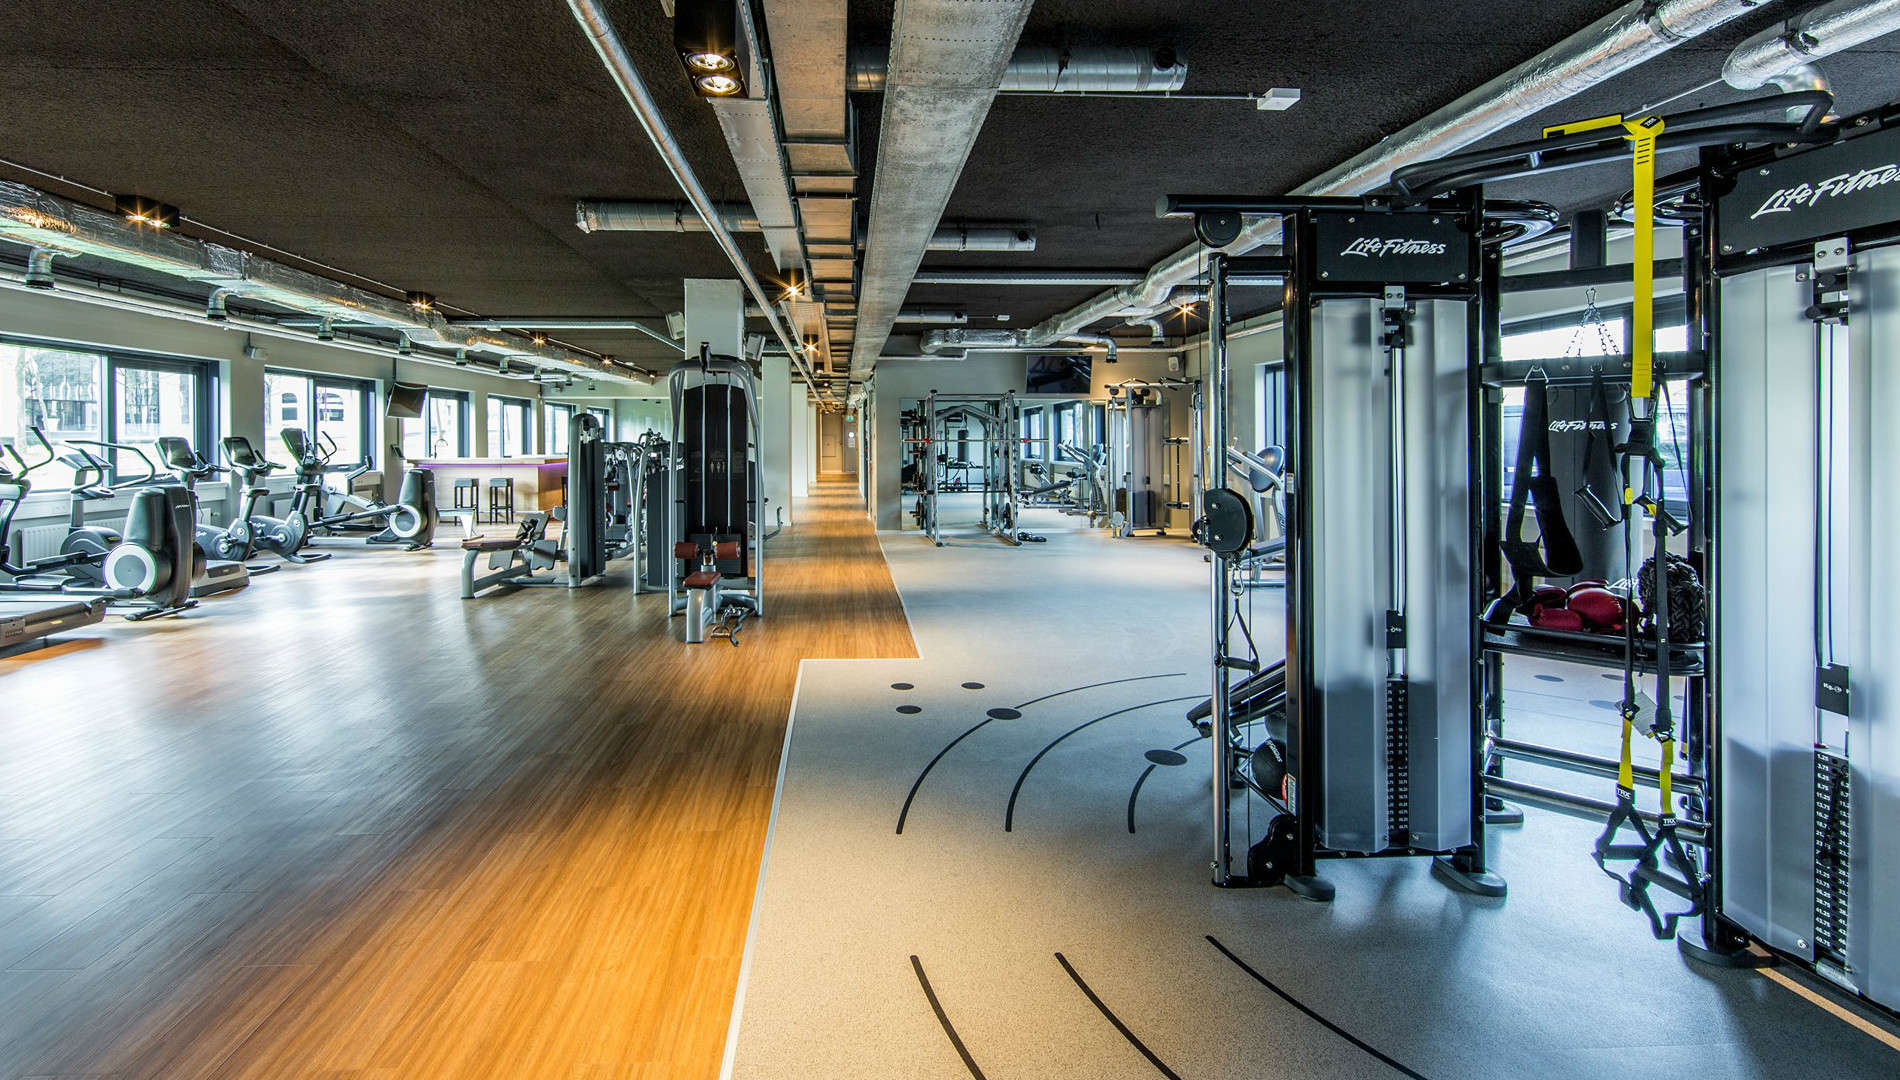 The Fitness Studio Saved 10h/Week by Automating Booking and Invoicing Processes